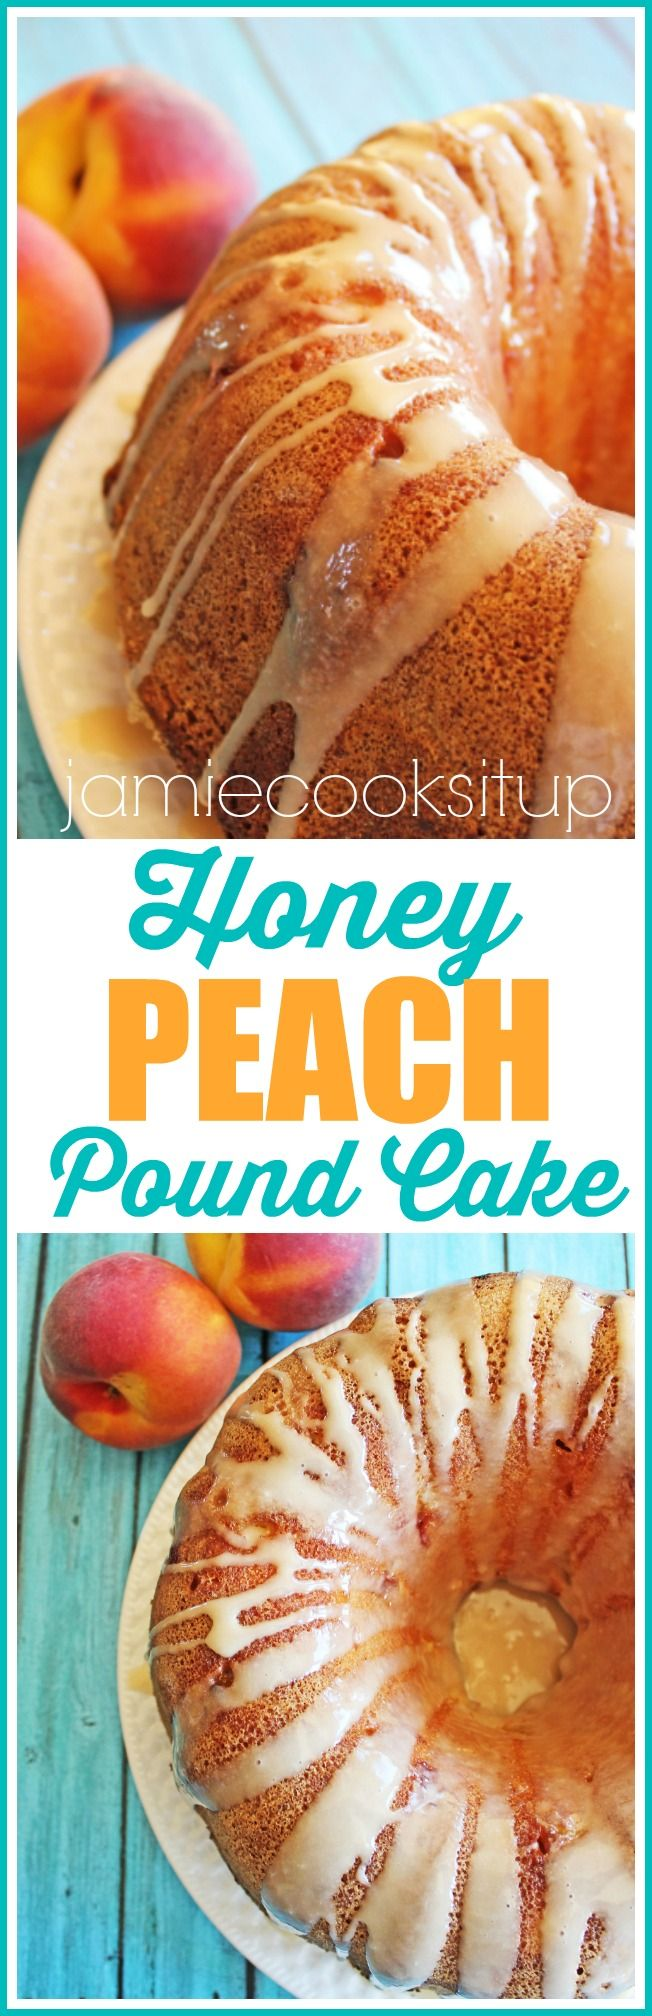 Honey Peach Pound Cake at Jamie Cooks It Up! A rich, buttery cake is studded with peaches and drizzled in a honey glaze. (Peach Pancake Muffin)